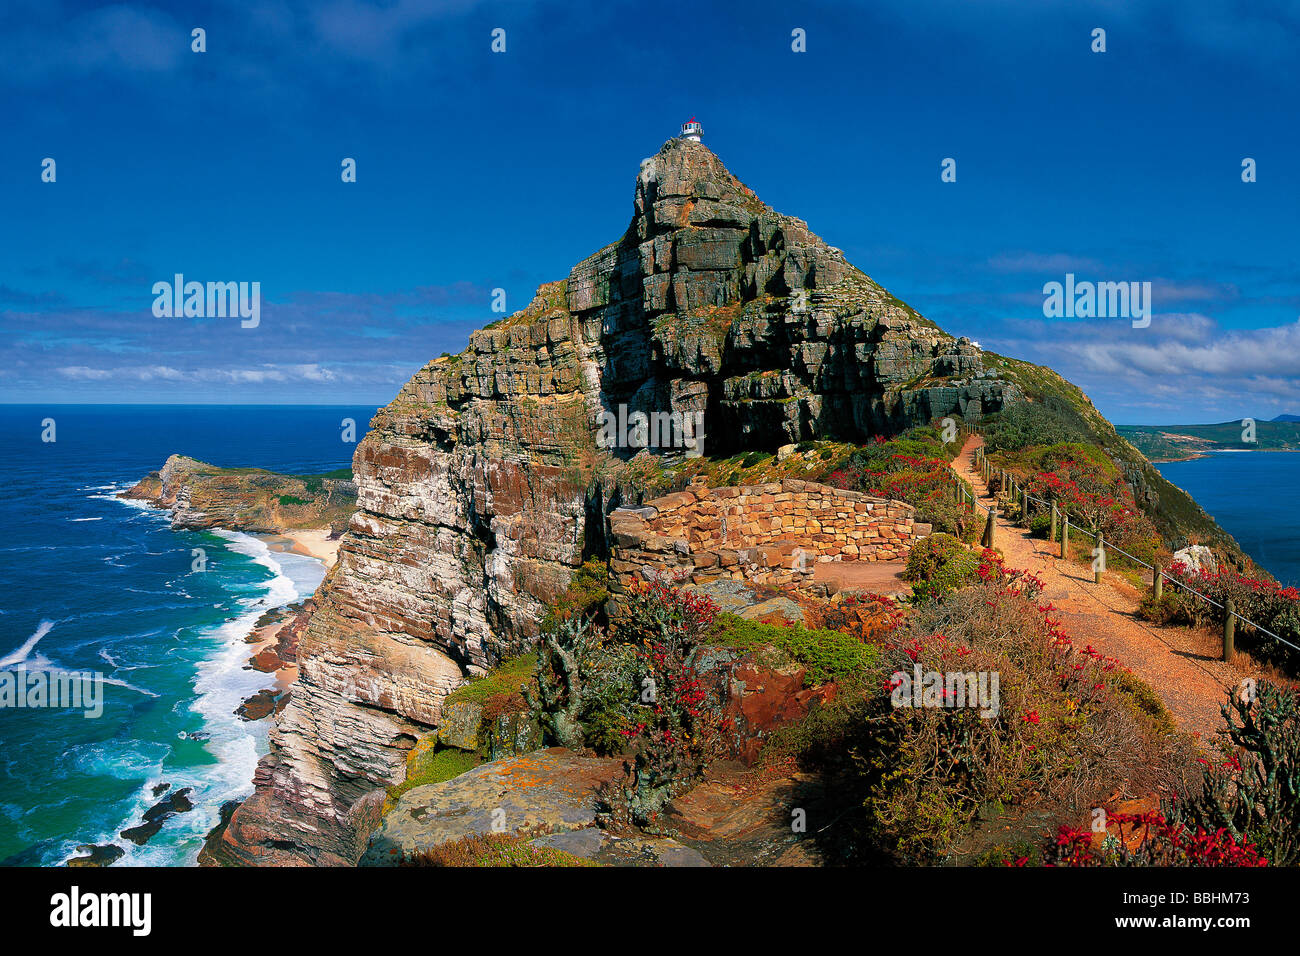 TOWERING CLIFFS RISE UP AGAINST THE OCEAN LIKE STATELY SENTINELS - Stock Image